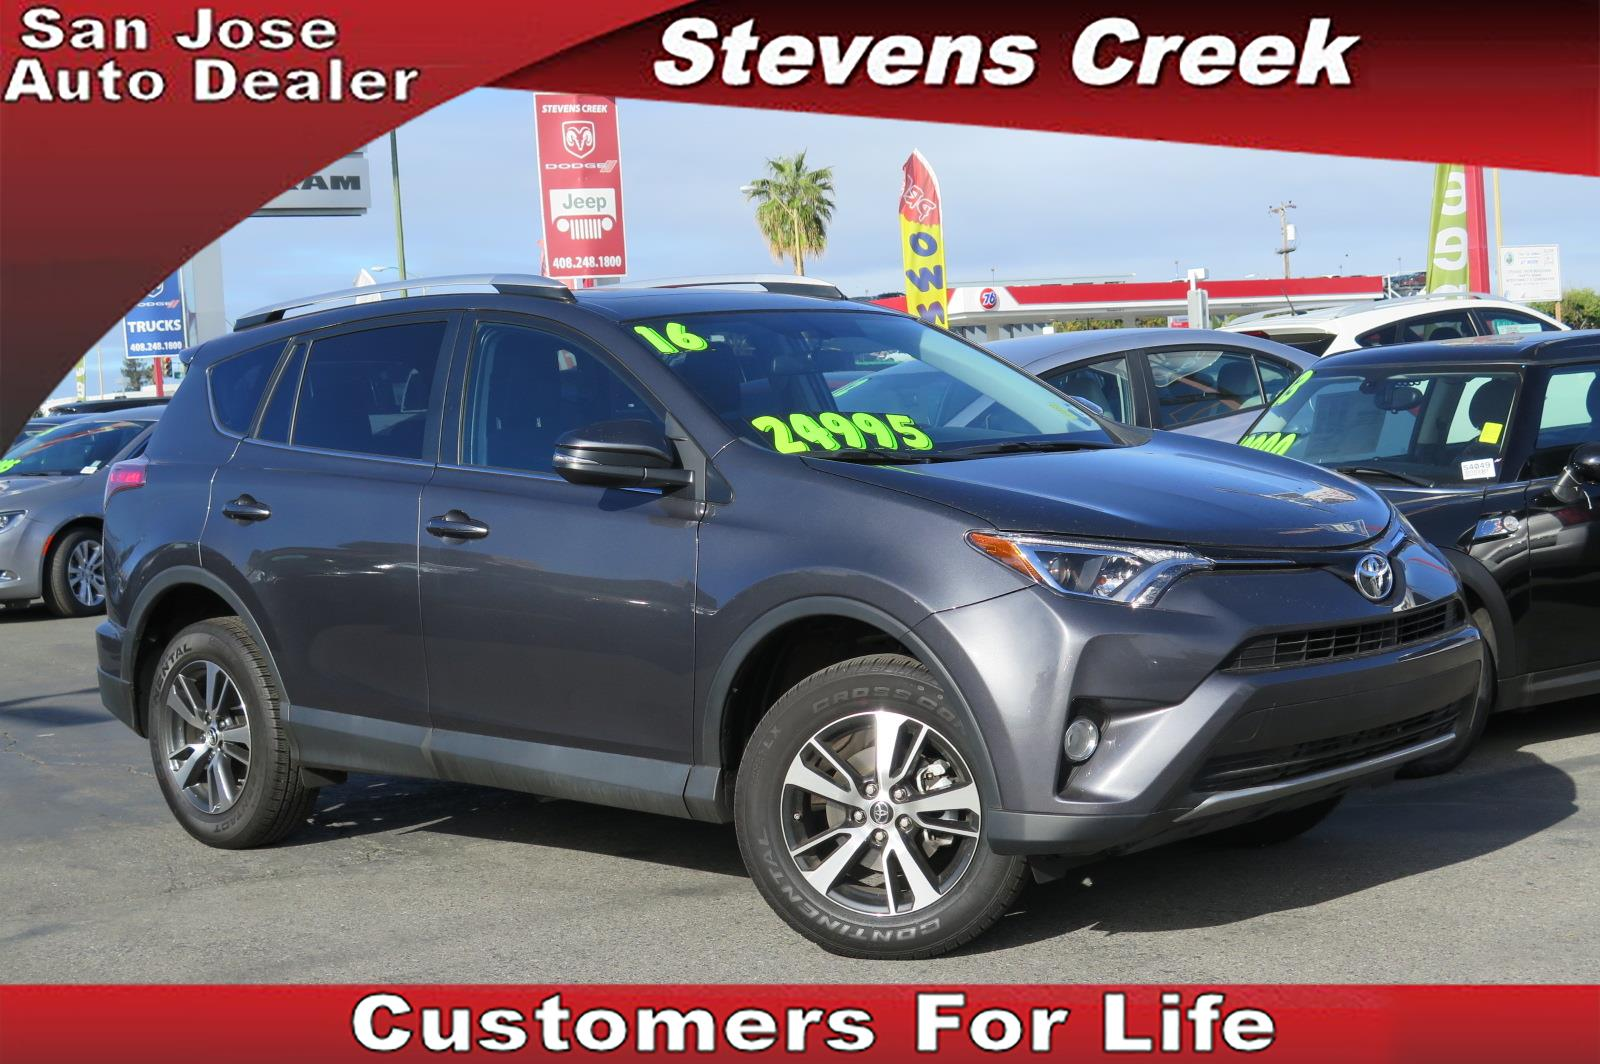 2016 TOYOTA RAV4 XLE gray 4-cyl 25 liter automatic fwd  folding side mirrors  power windows